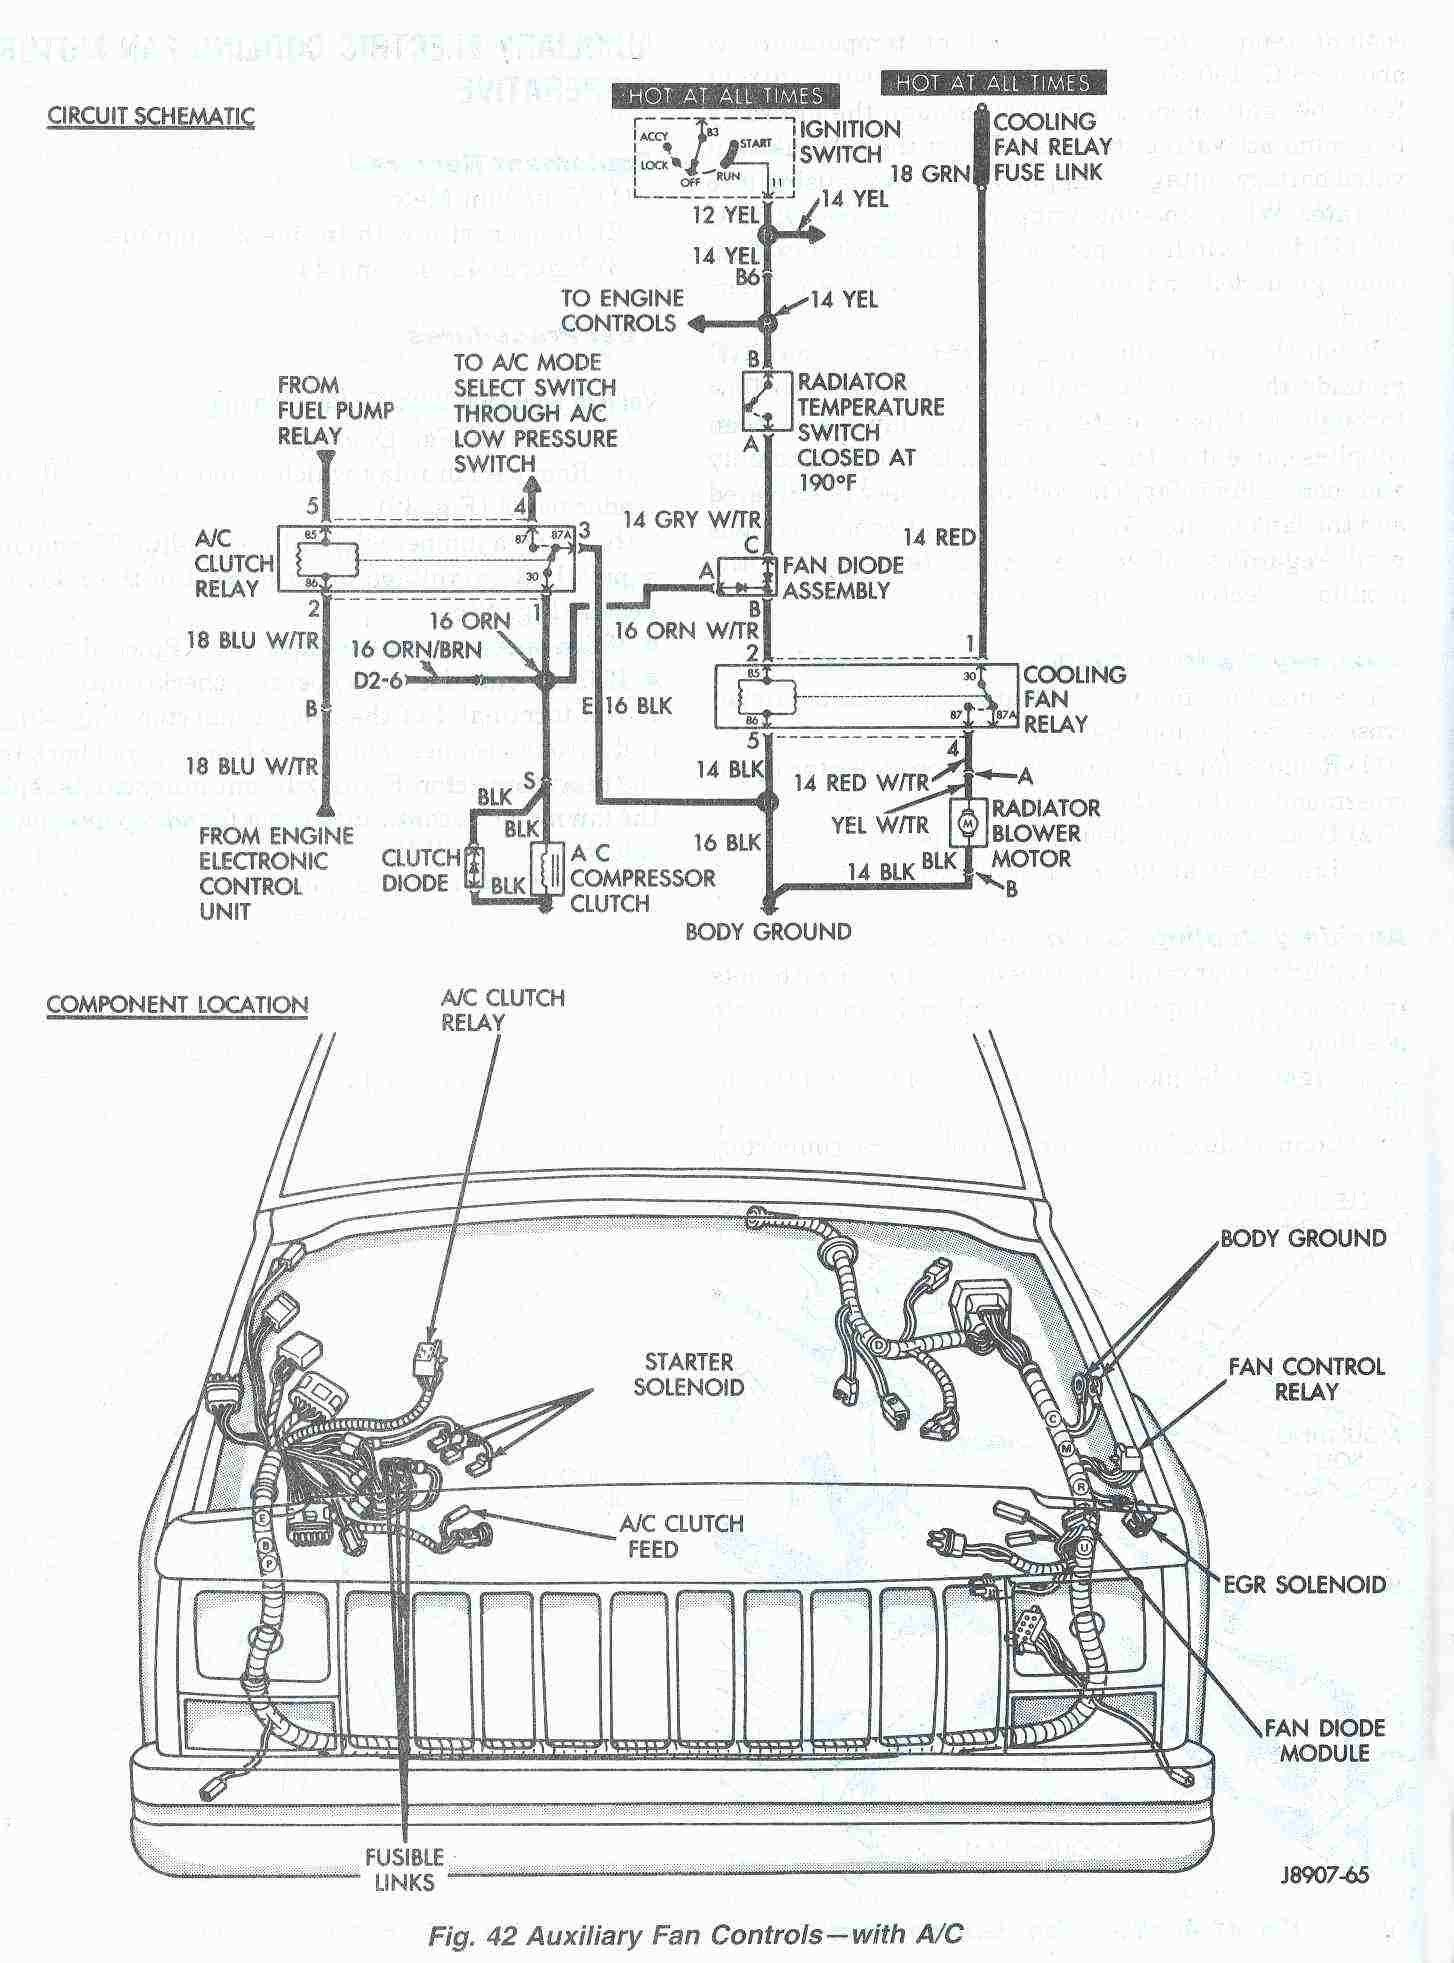 1999 jeep cherokee a c clutch wiring diagram unique ac circuit diagram diagram wiringdiagram diagramming  unique ac circuit diagram diagram